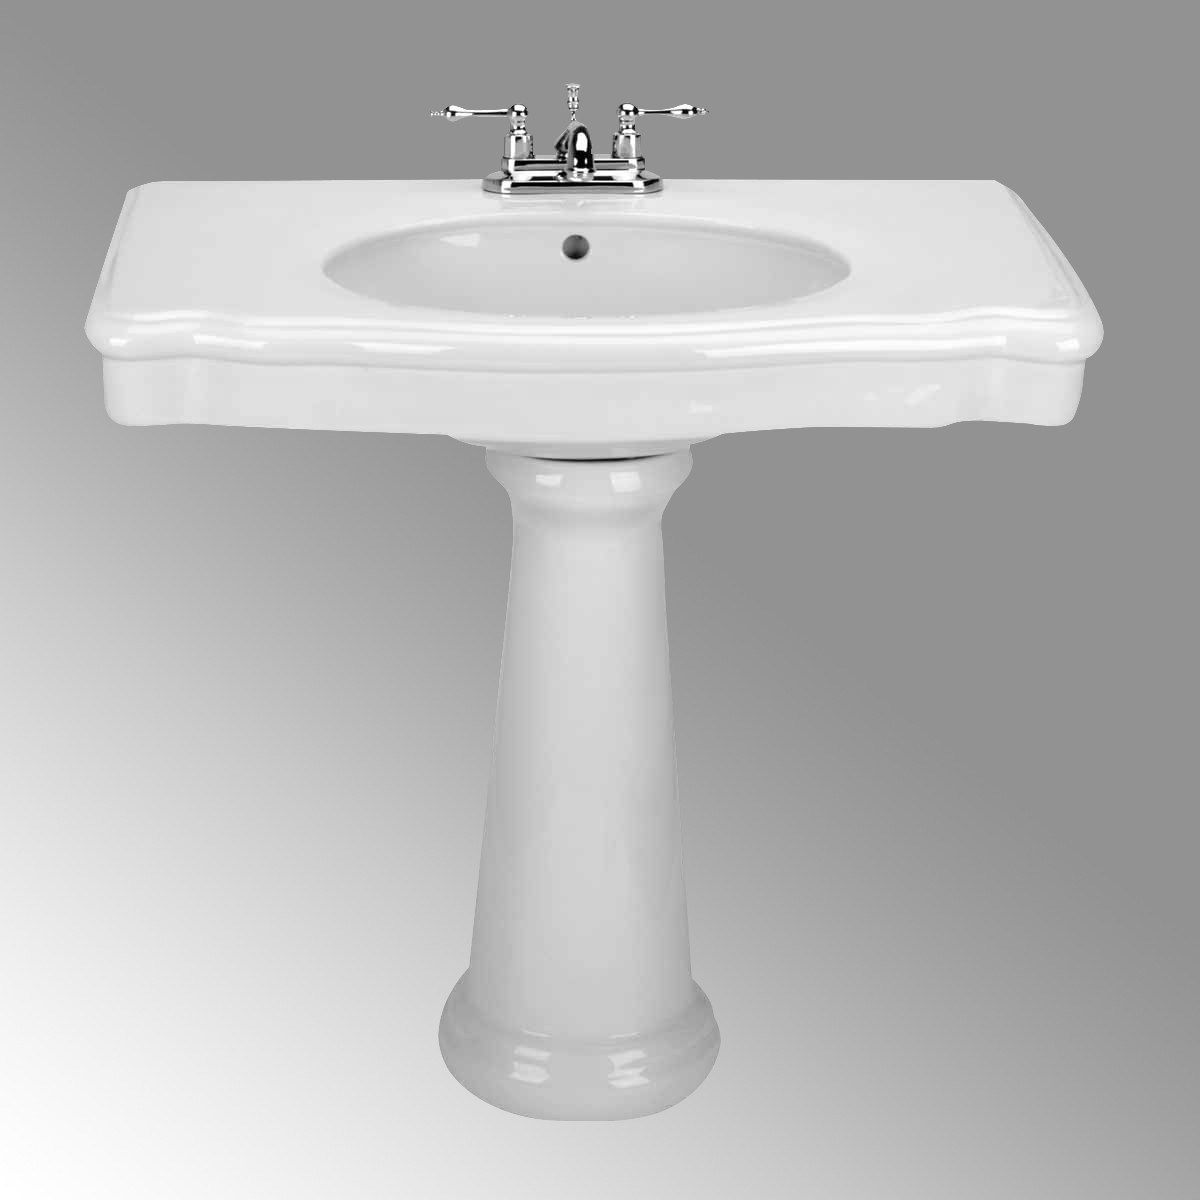 old pedestal sink bathroom console white china darbyshire. Black Bedroom Furniture Sets. Home Design Ideas